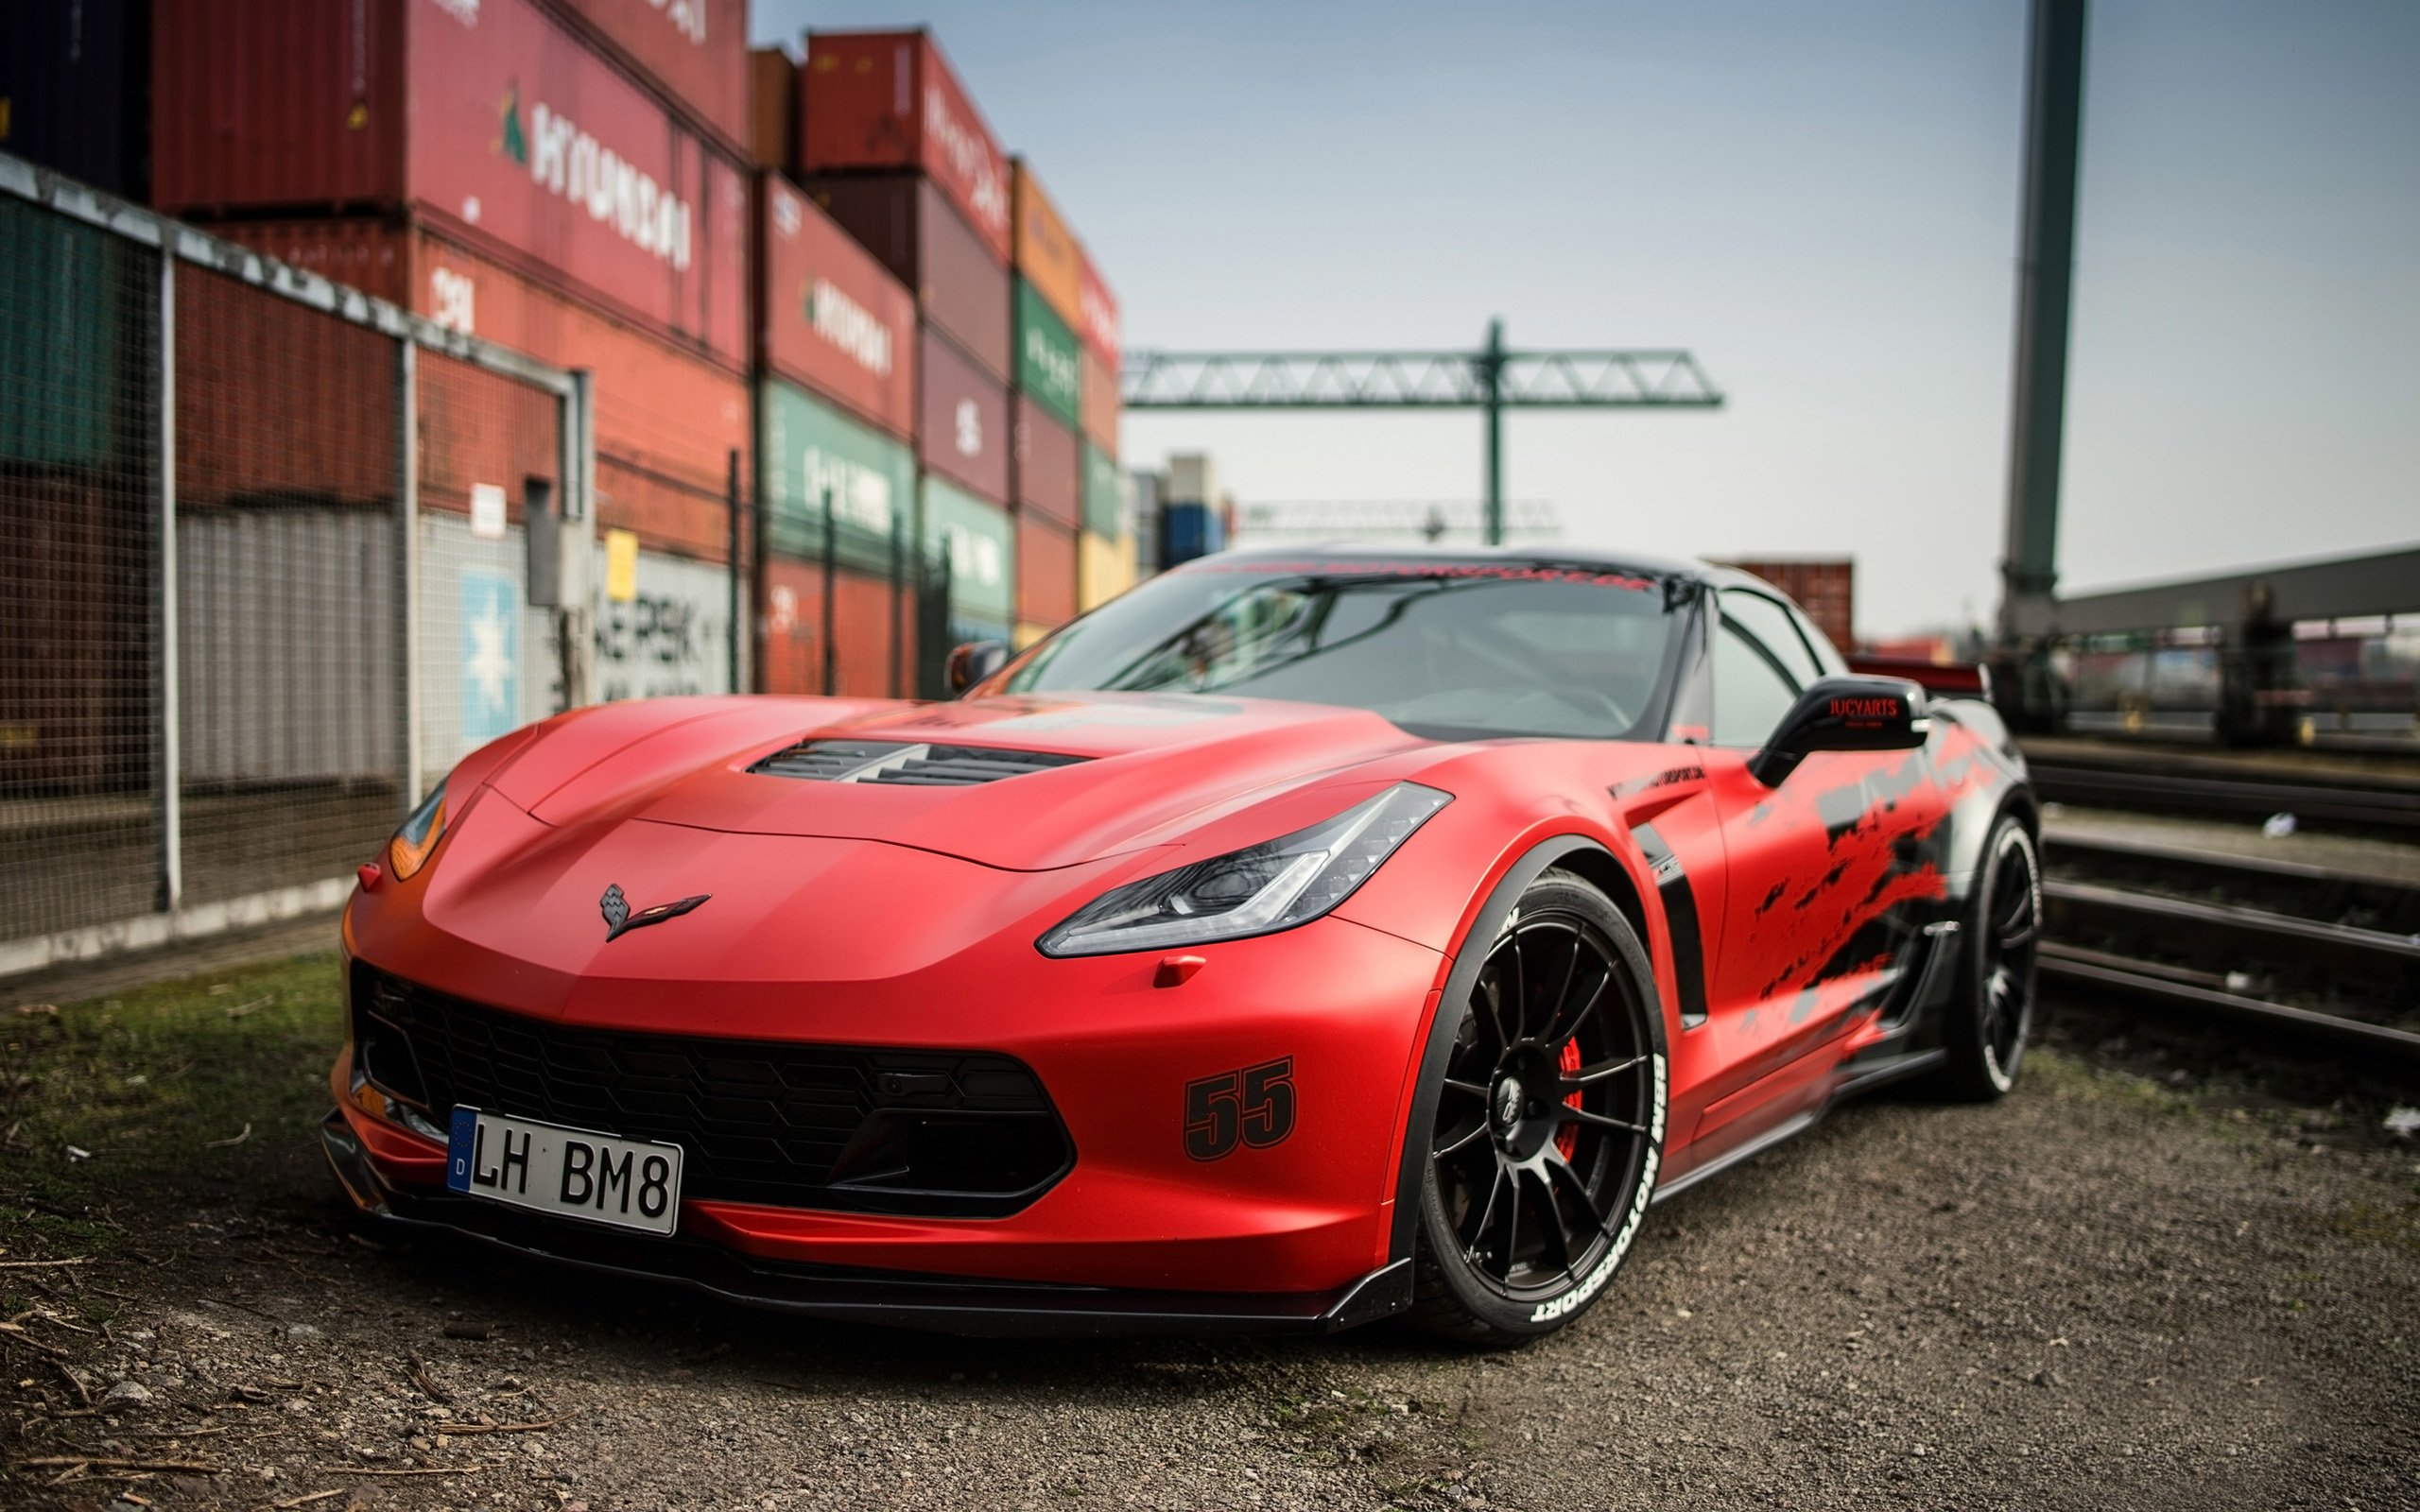 2016 bbm motorsport chevrolet corvette c7 z06 wallpaper hd car